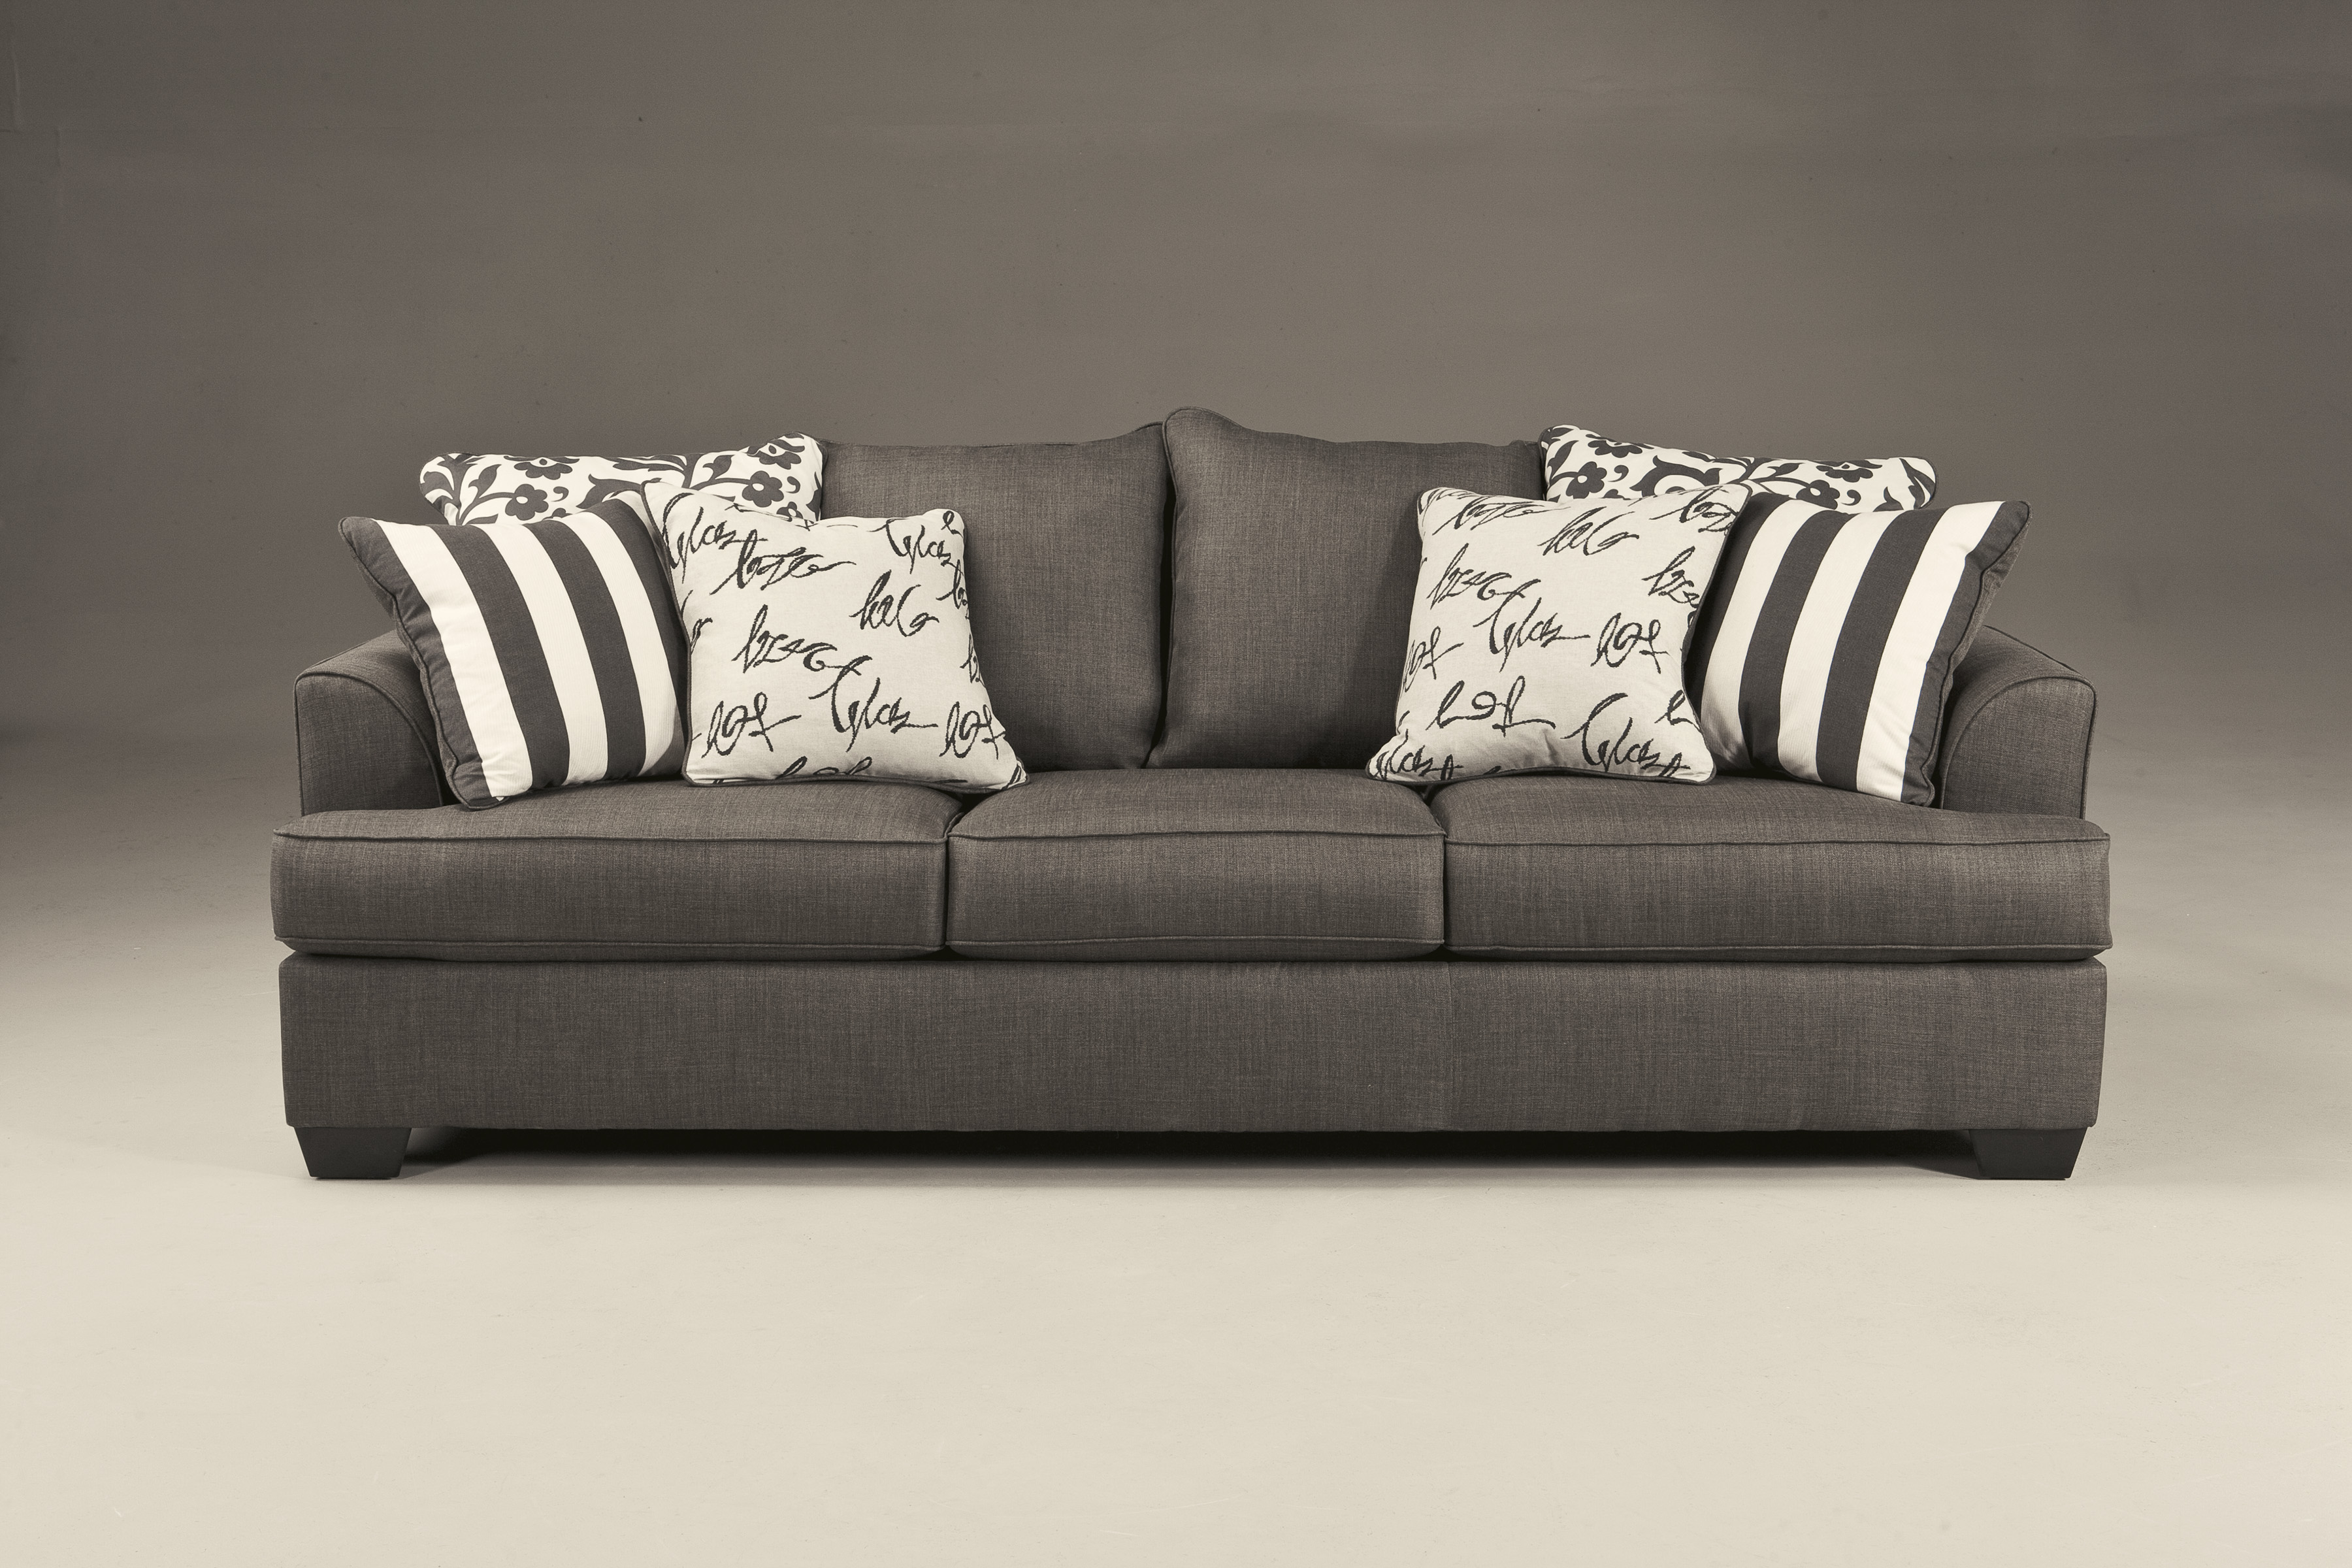 Awesome Queen Sofa Sleeper 52 For Sofas and Couches Ideas with Queen Sofa Sleeper